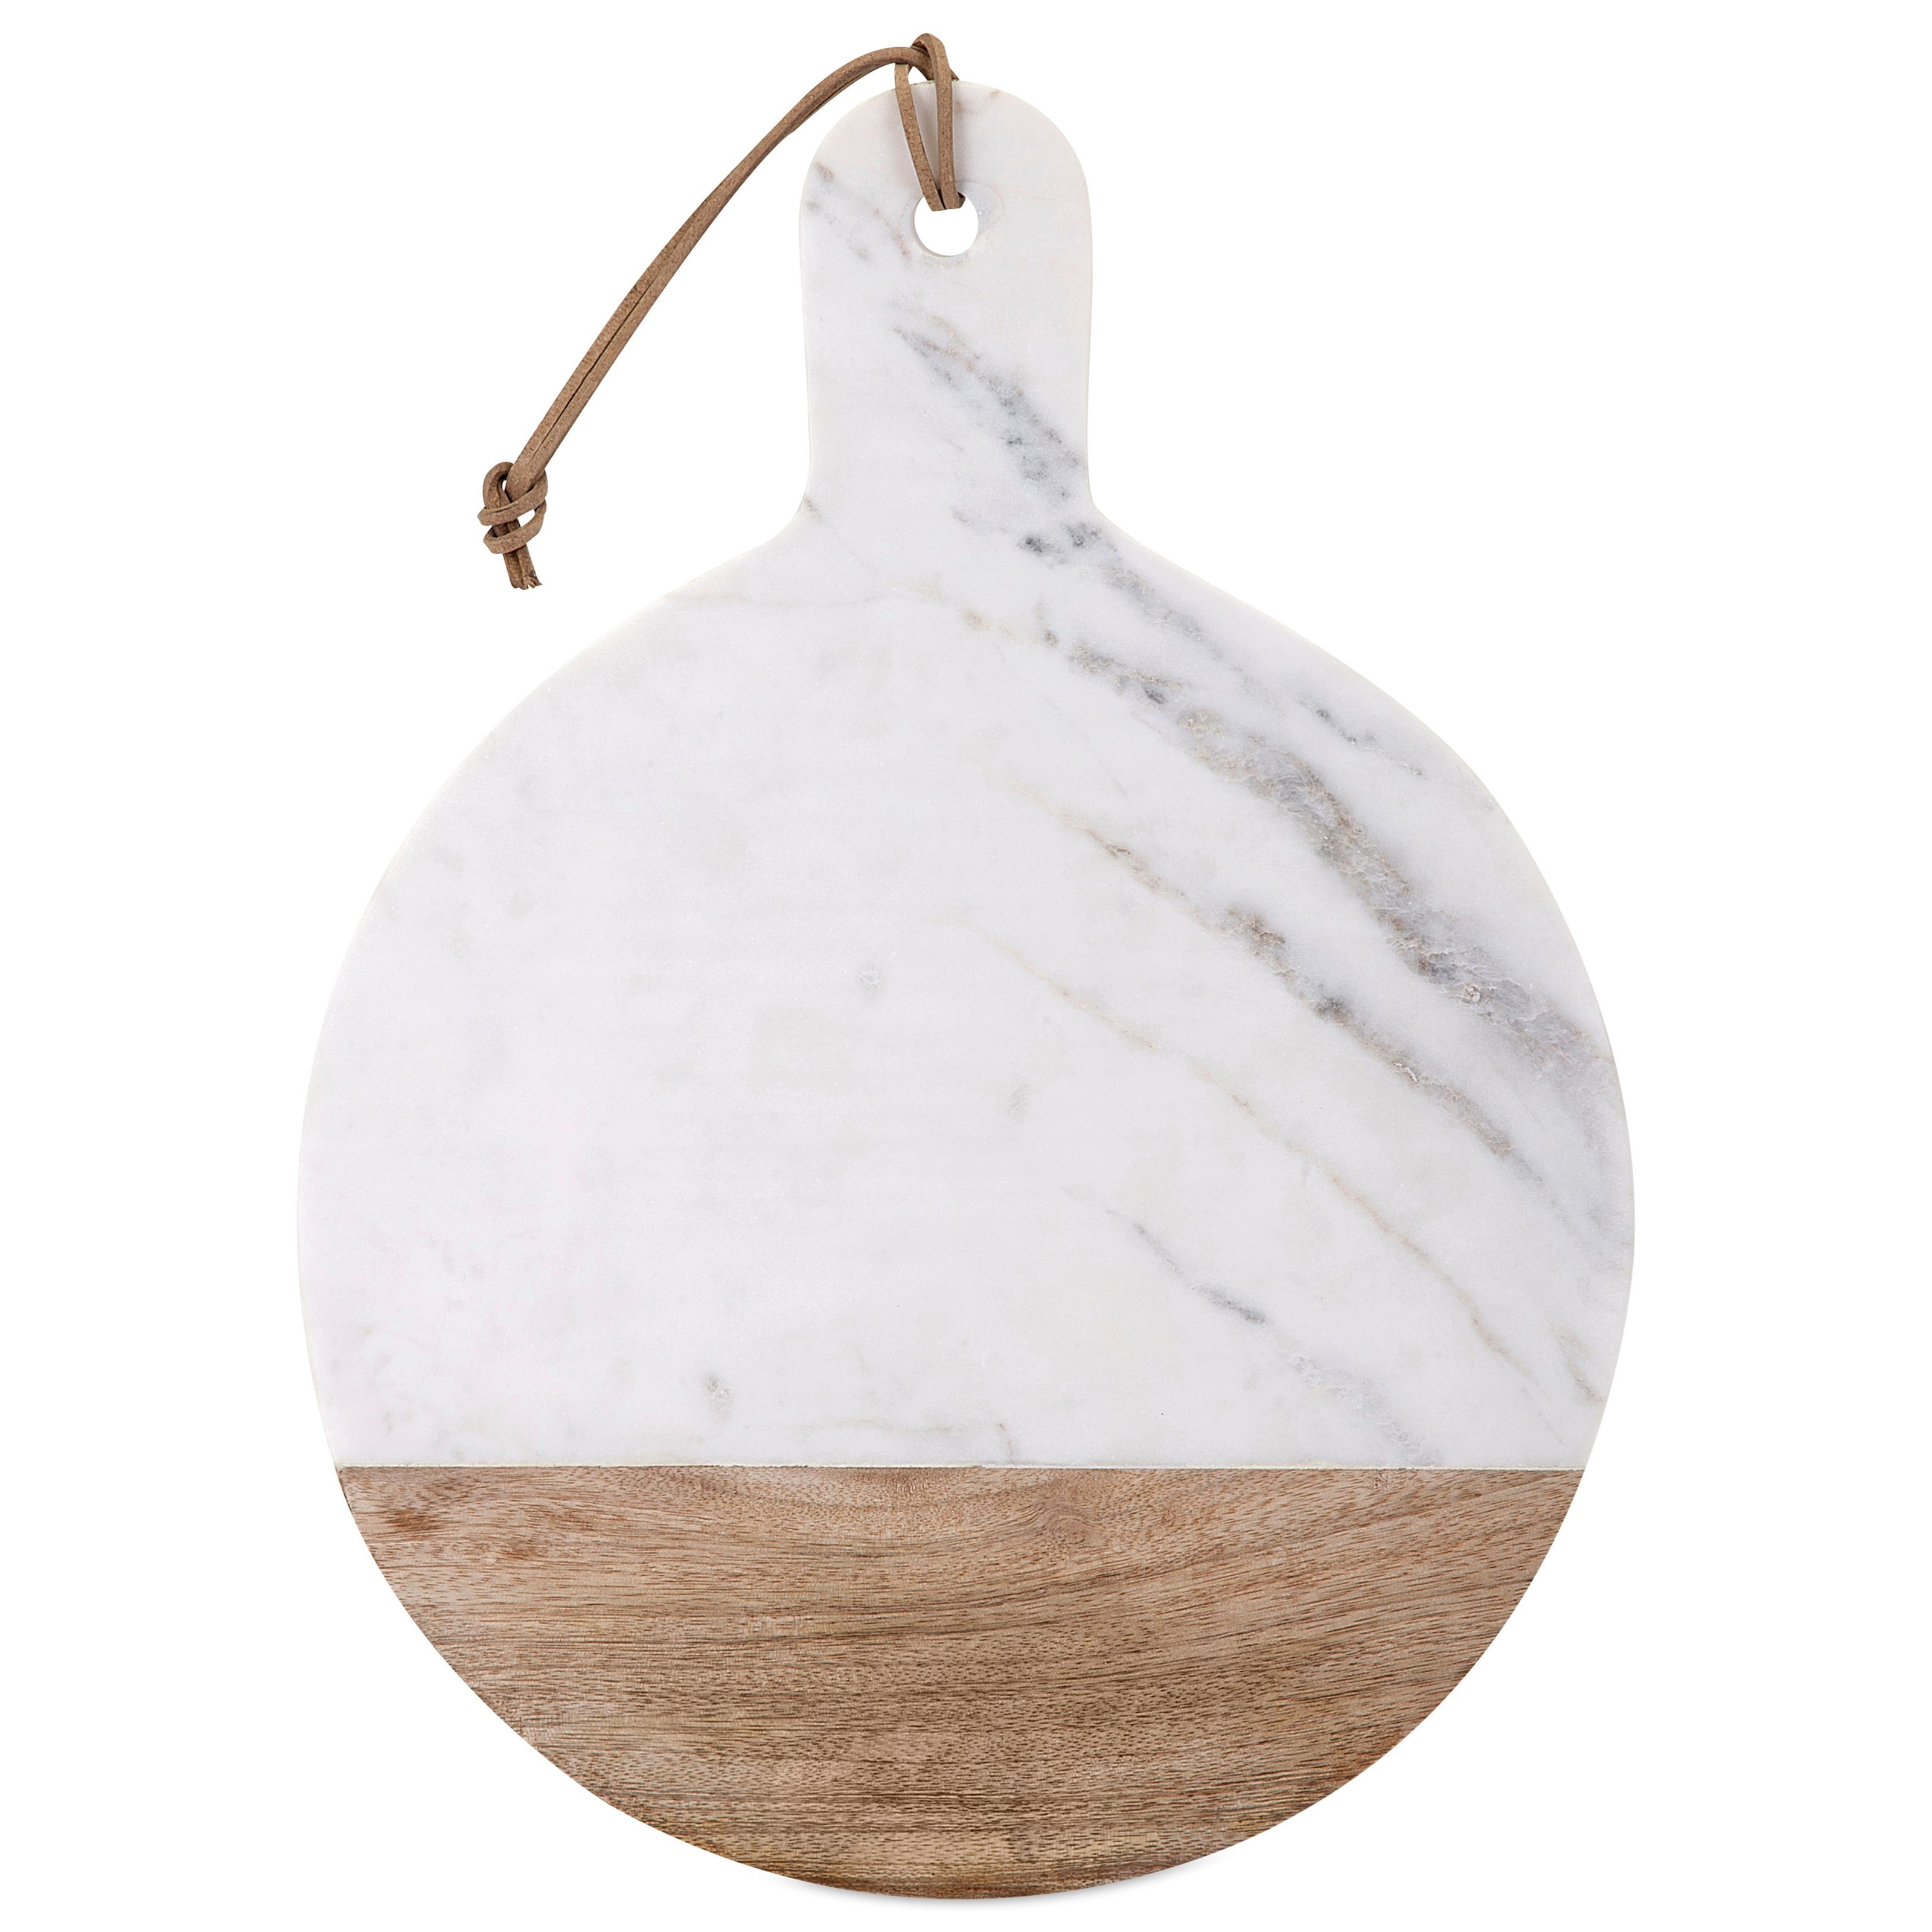 Accessories Peyton Marble and Wood Cheese Board by IMAX Worldwide Home at Alison Craig Home Furnishings